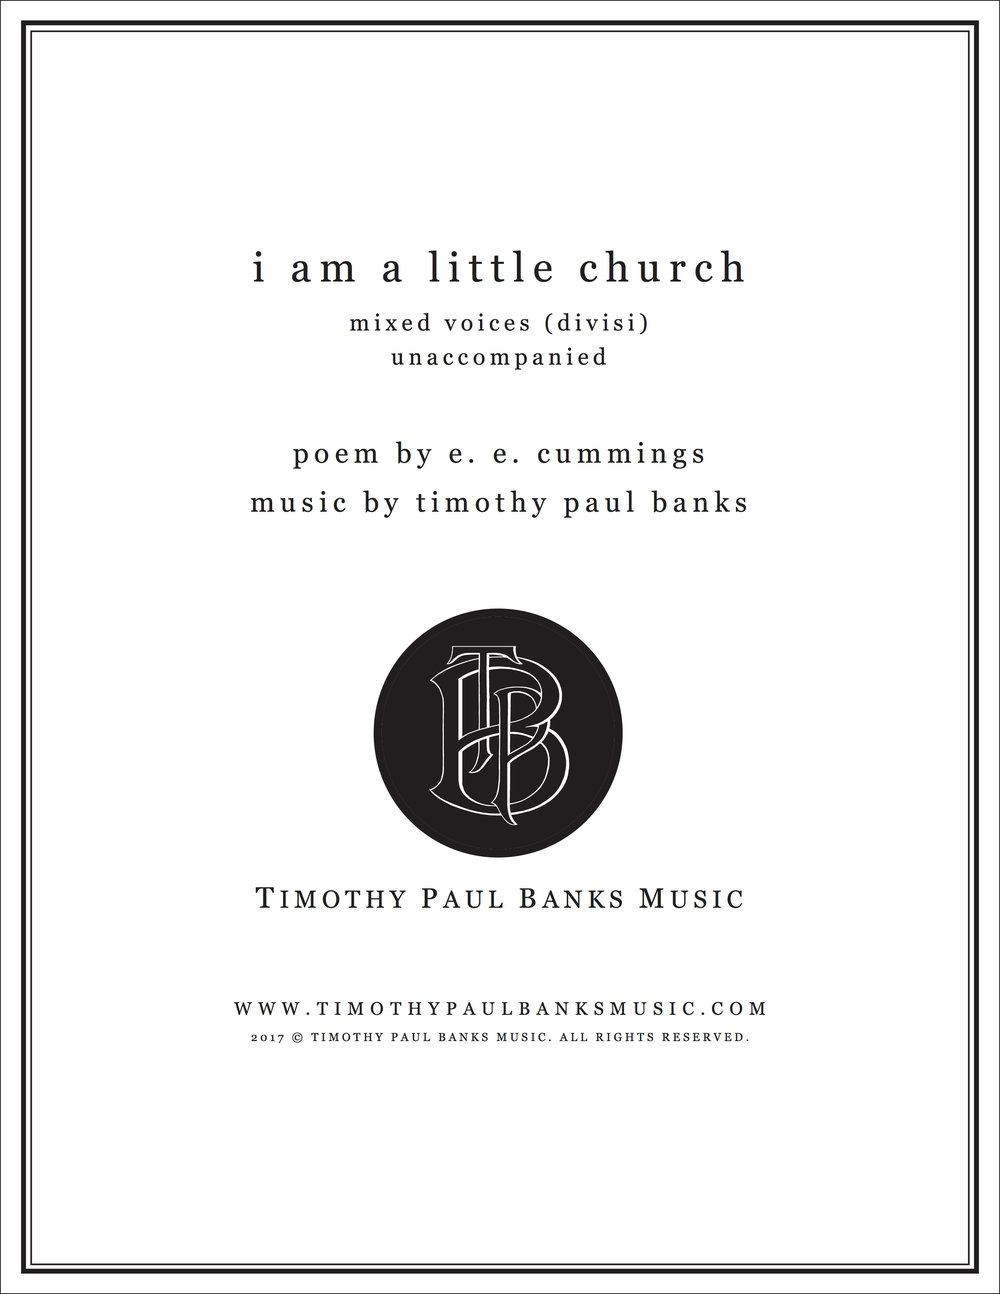 TPB Music Cover-iamalittlechurch.jpg